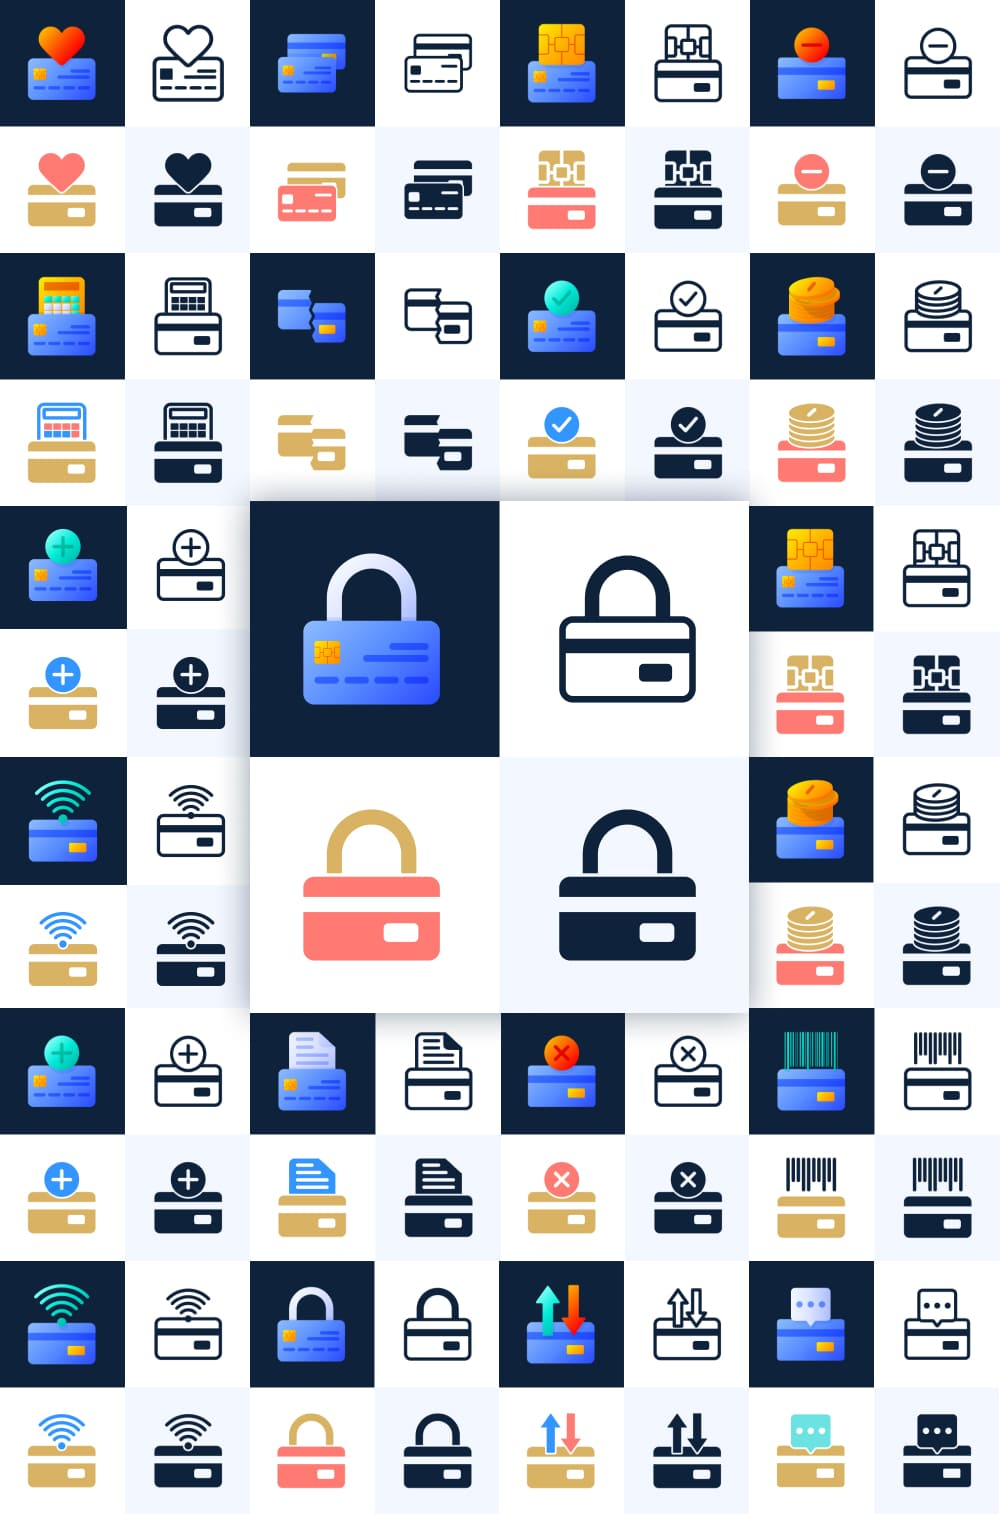 Flexible icons and easy customization.